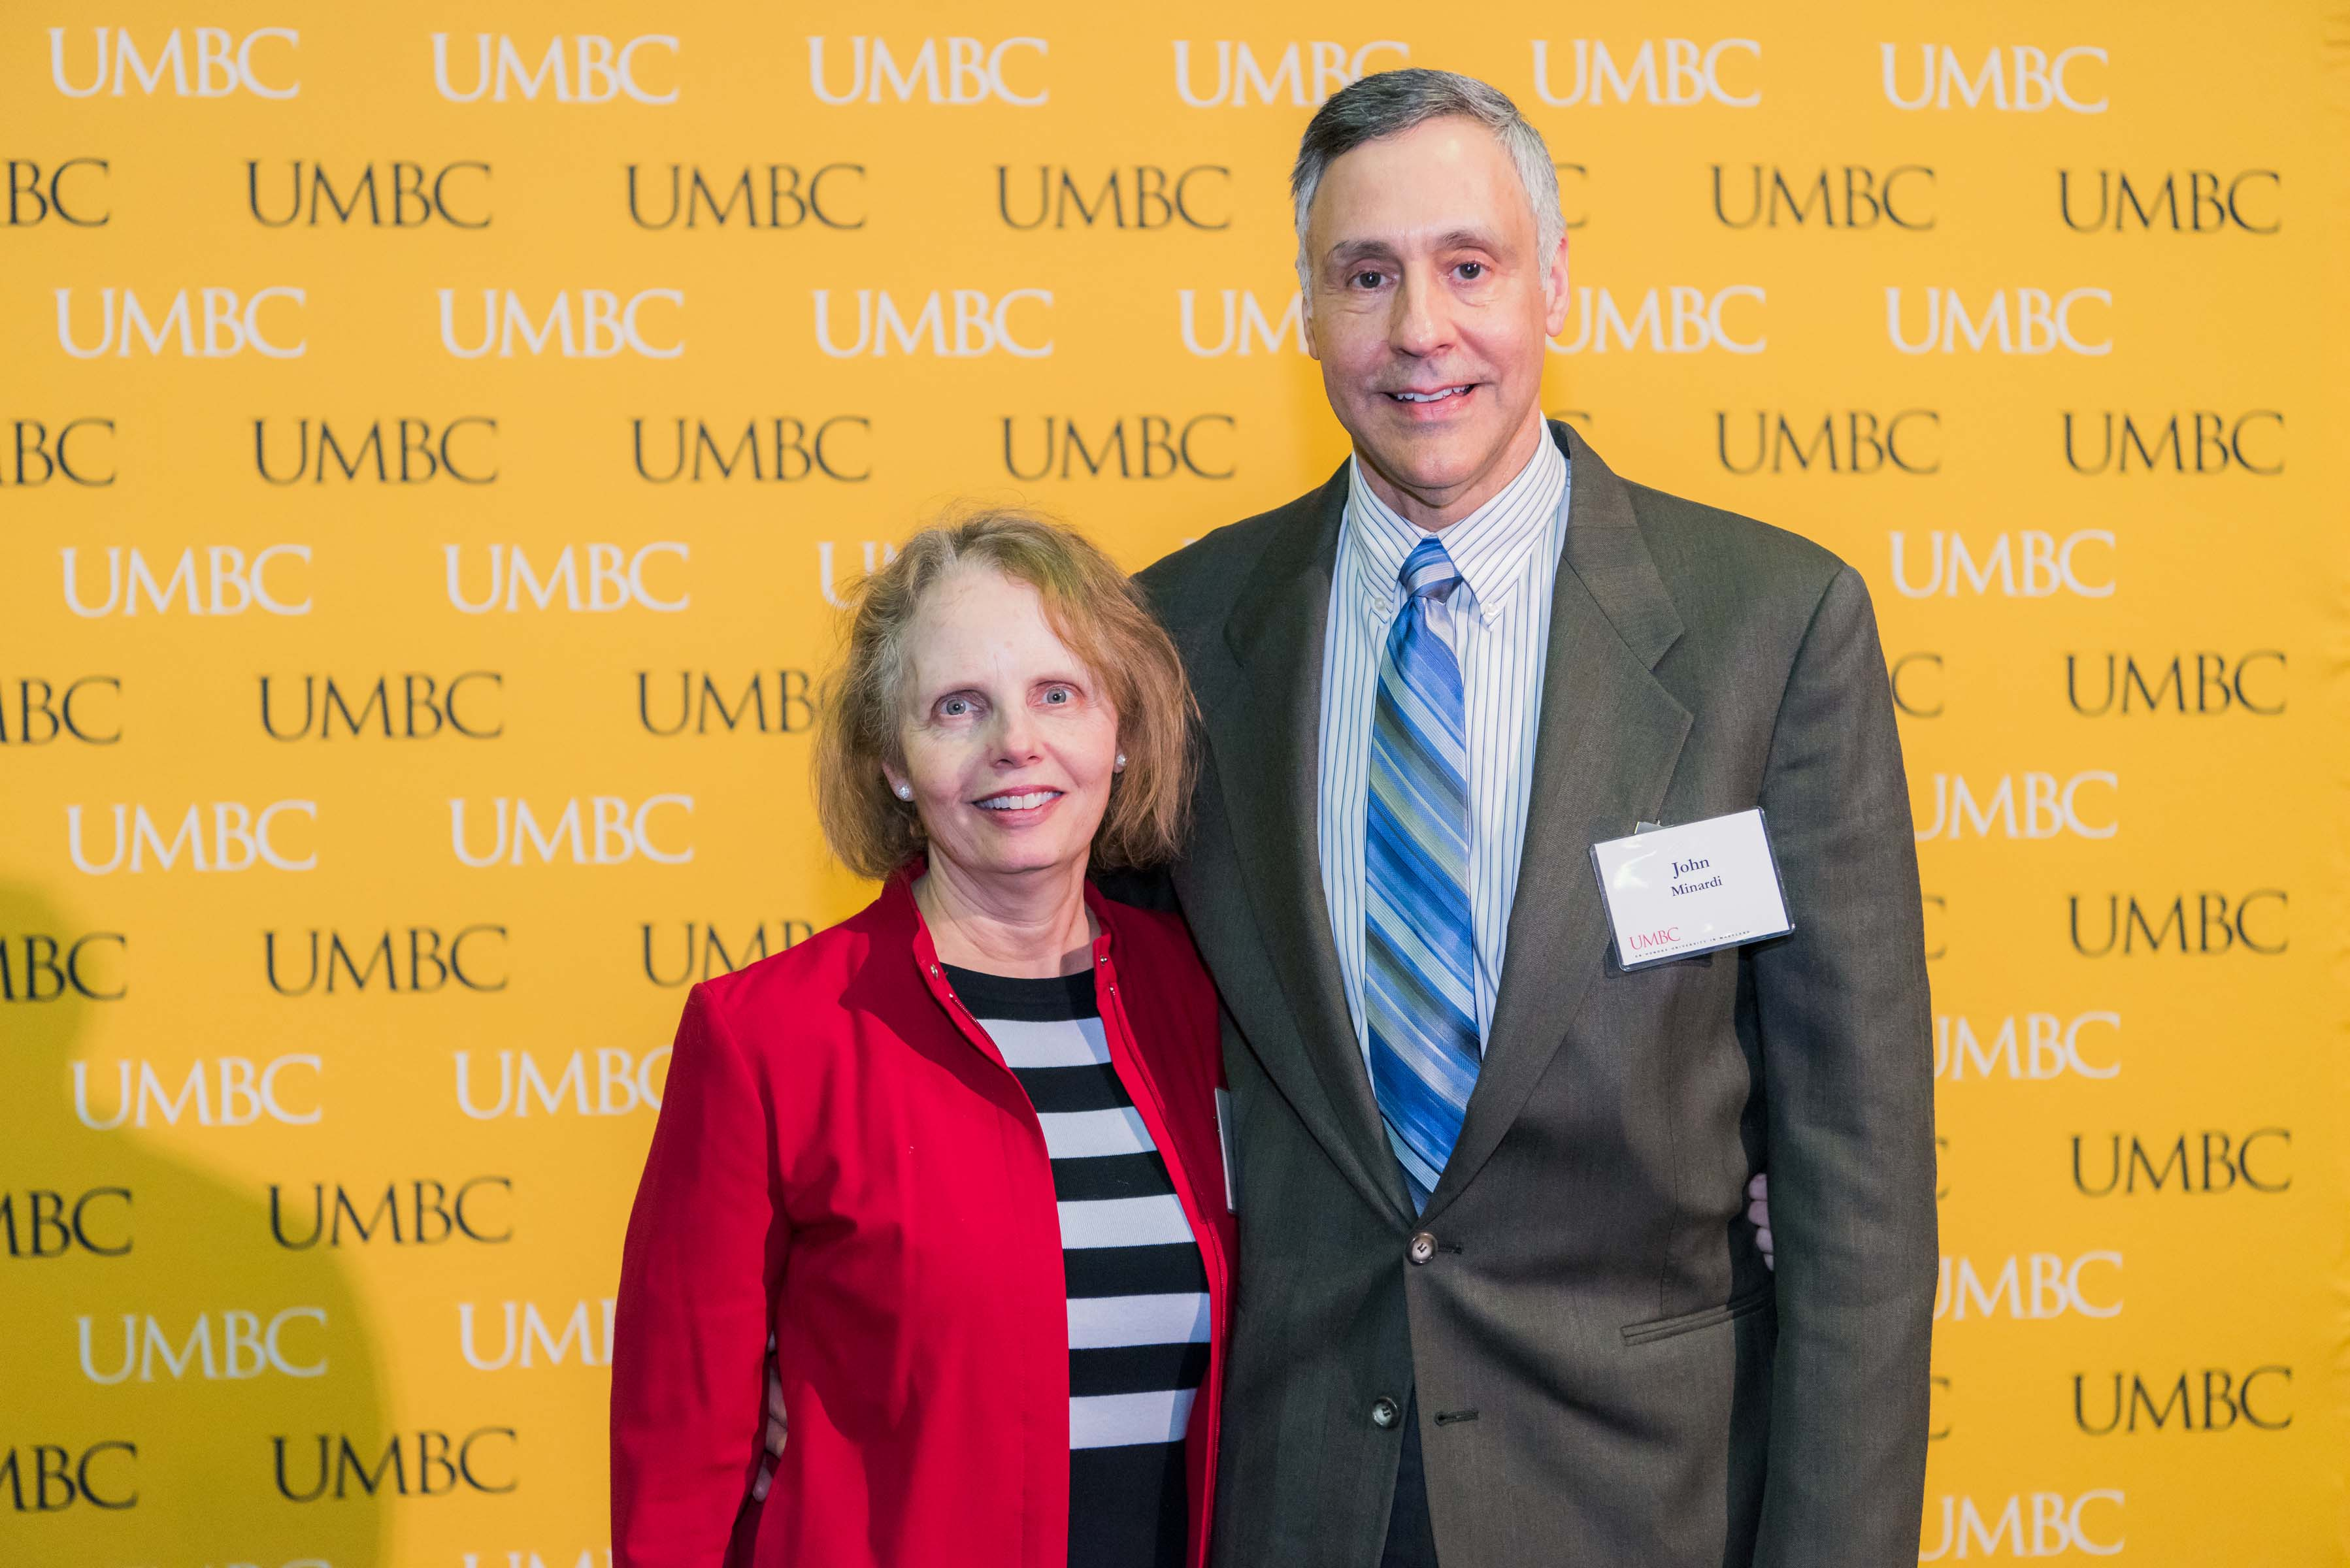 Couple pose in front of the UMBC wall at the scholarship luncheon